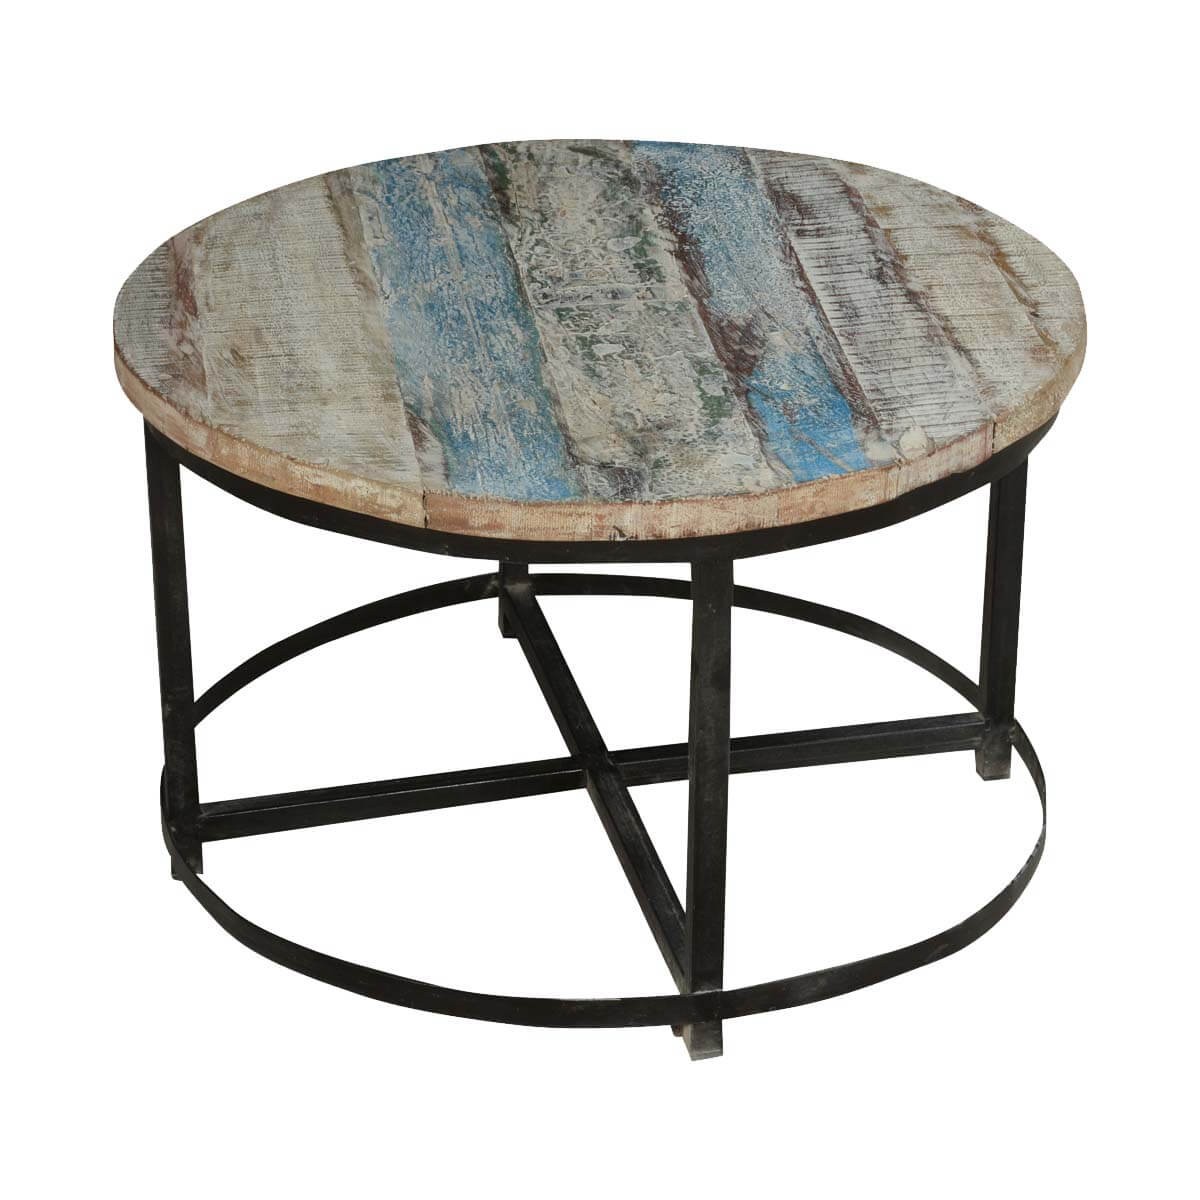 Reclaimed Wood Coffee Table Round: Bithlo Reclaimed Wood Top Round Industrial Coffee Table